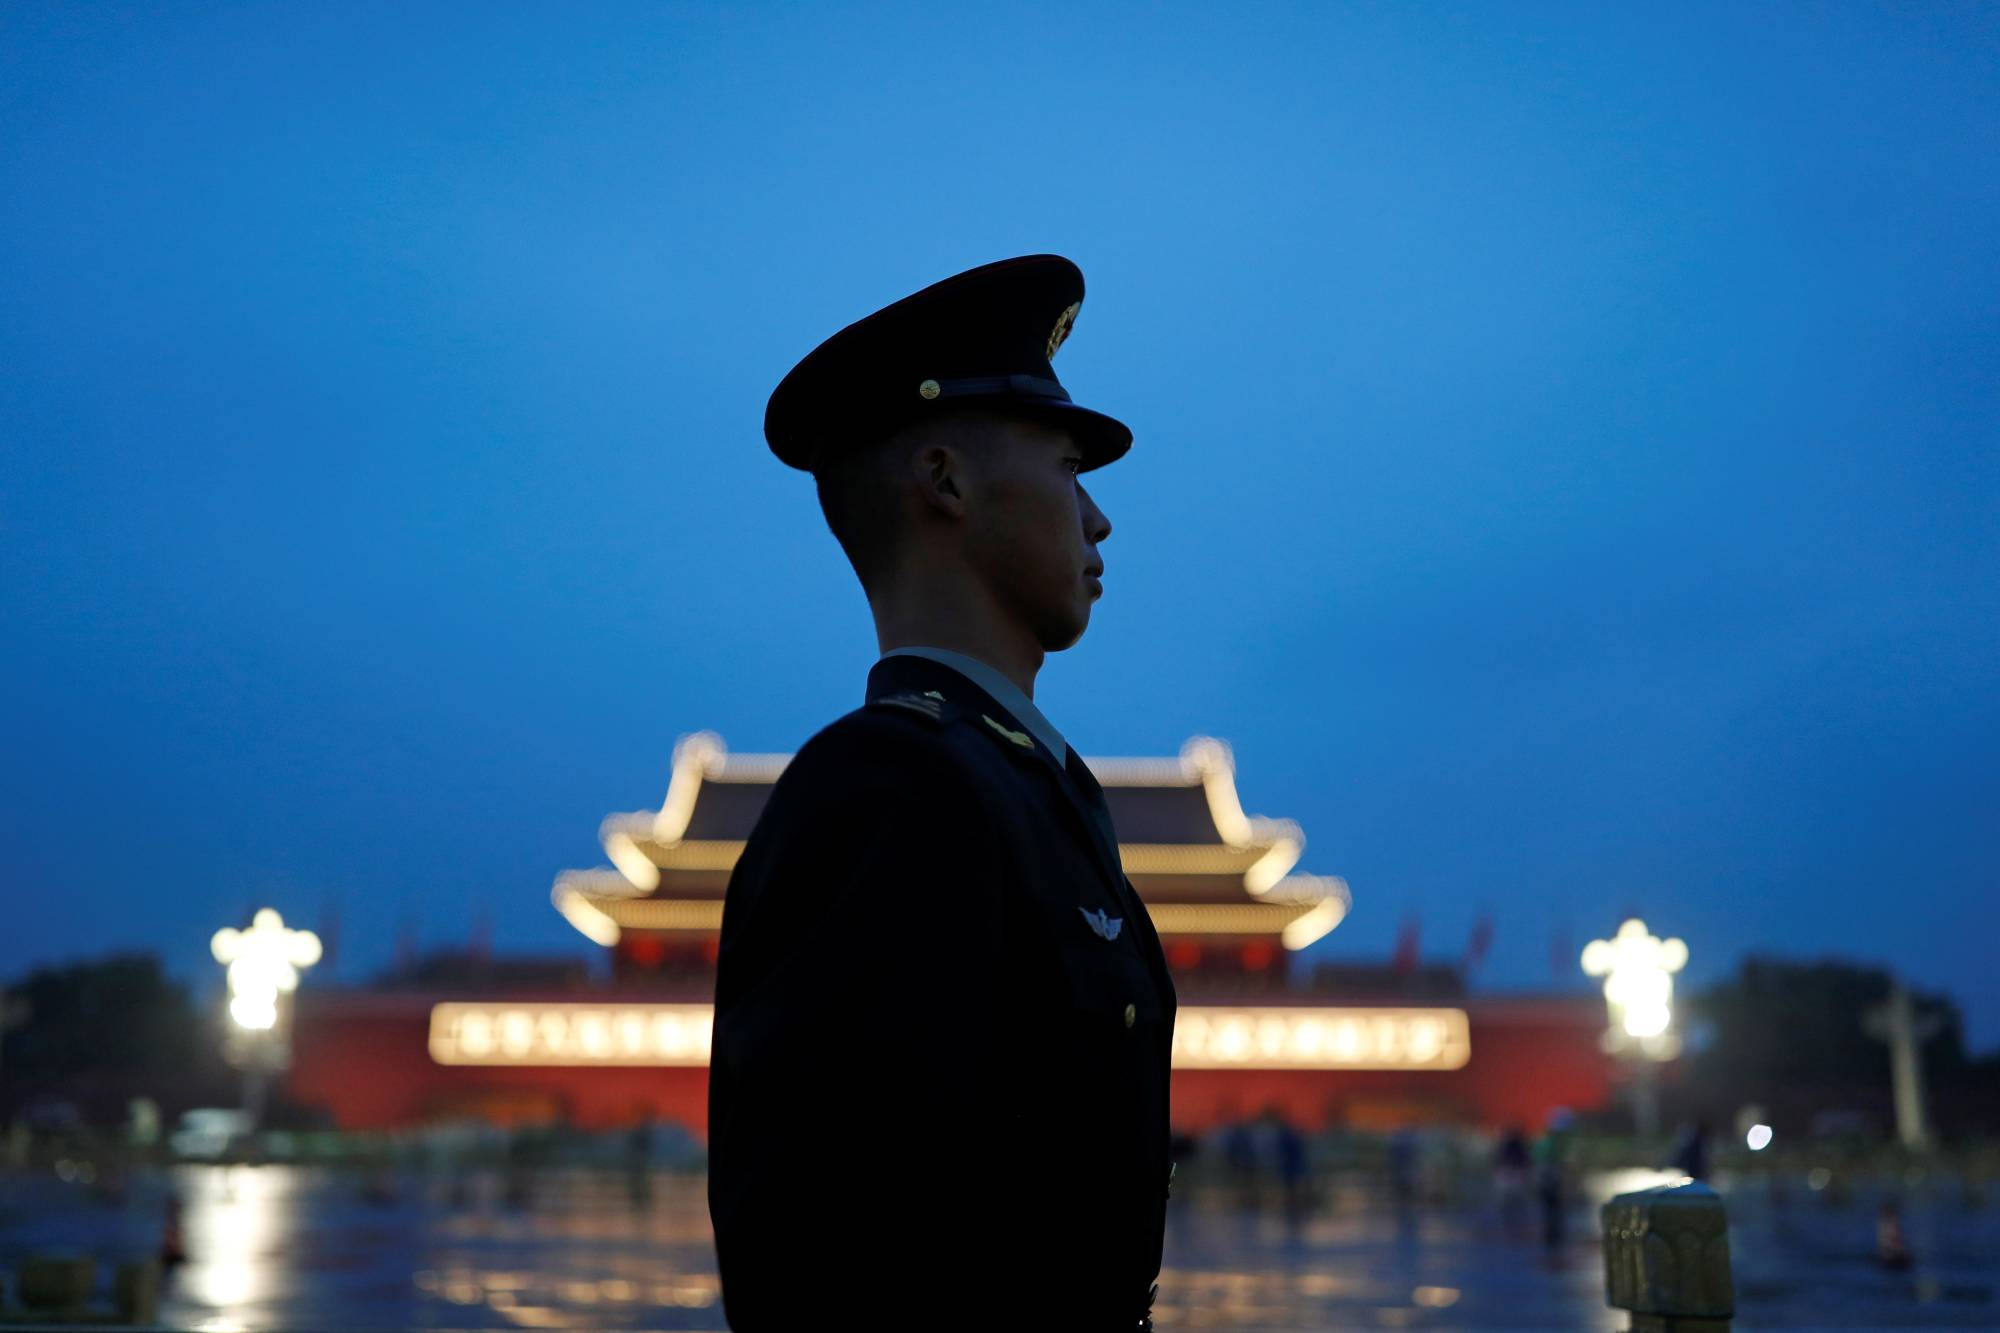 A paramilitary police officer stands guard during a flag-raising ceremony at Tiananmen Square in Beijing on Oct. 1 to mark the 71st anniversary of the founding of People's Republic of China. | REUTERS